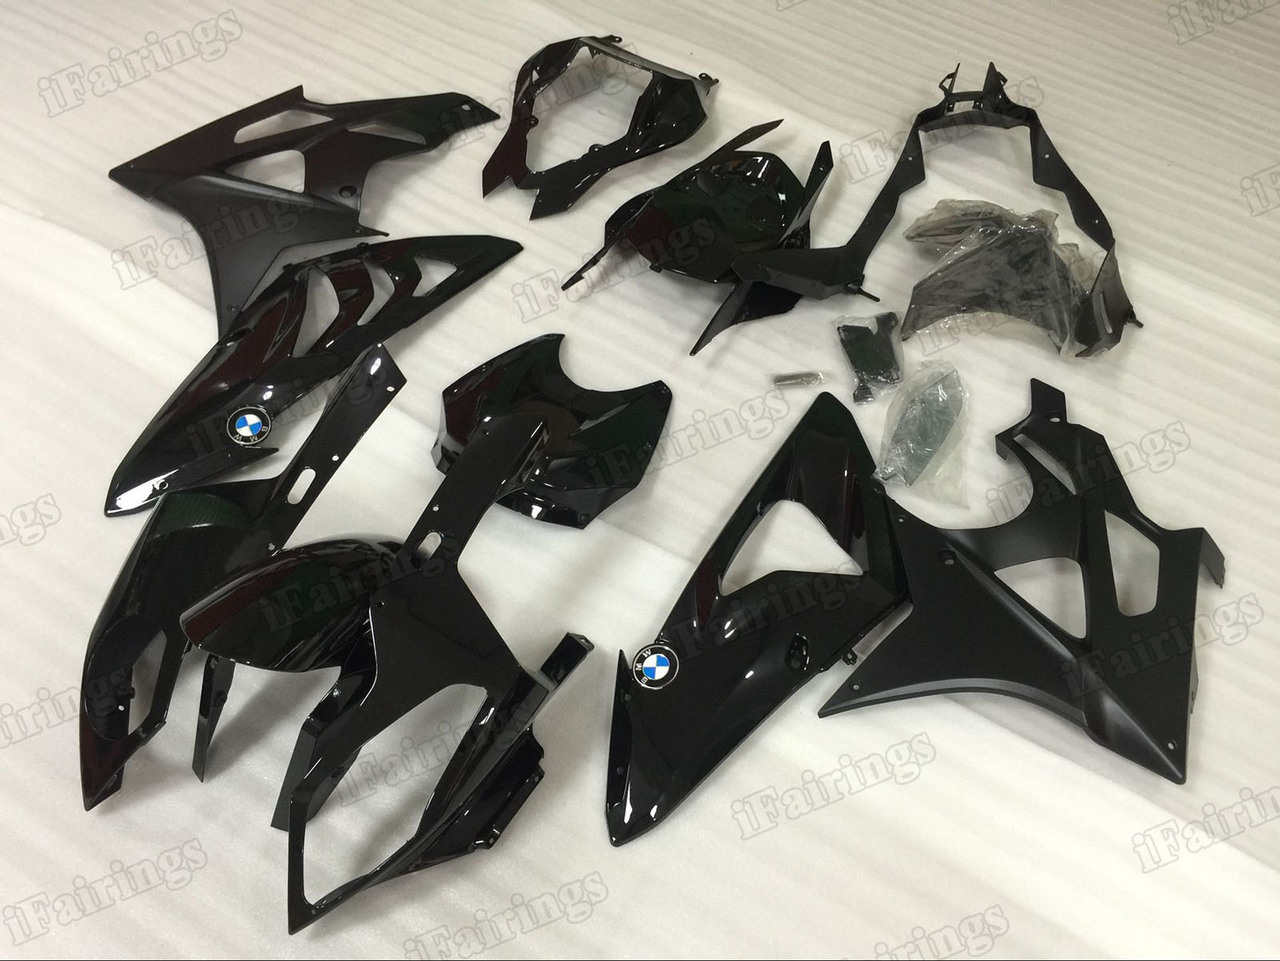 2009 2010 2011 2012 2013 2014 BMW S1000RR black fairings.